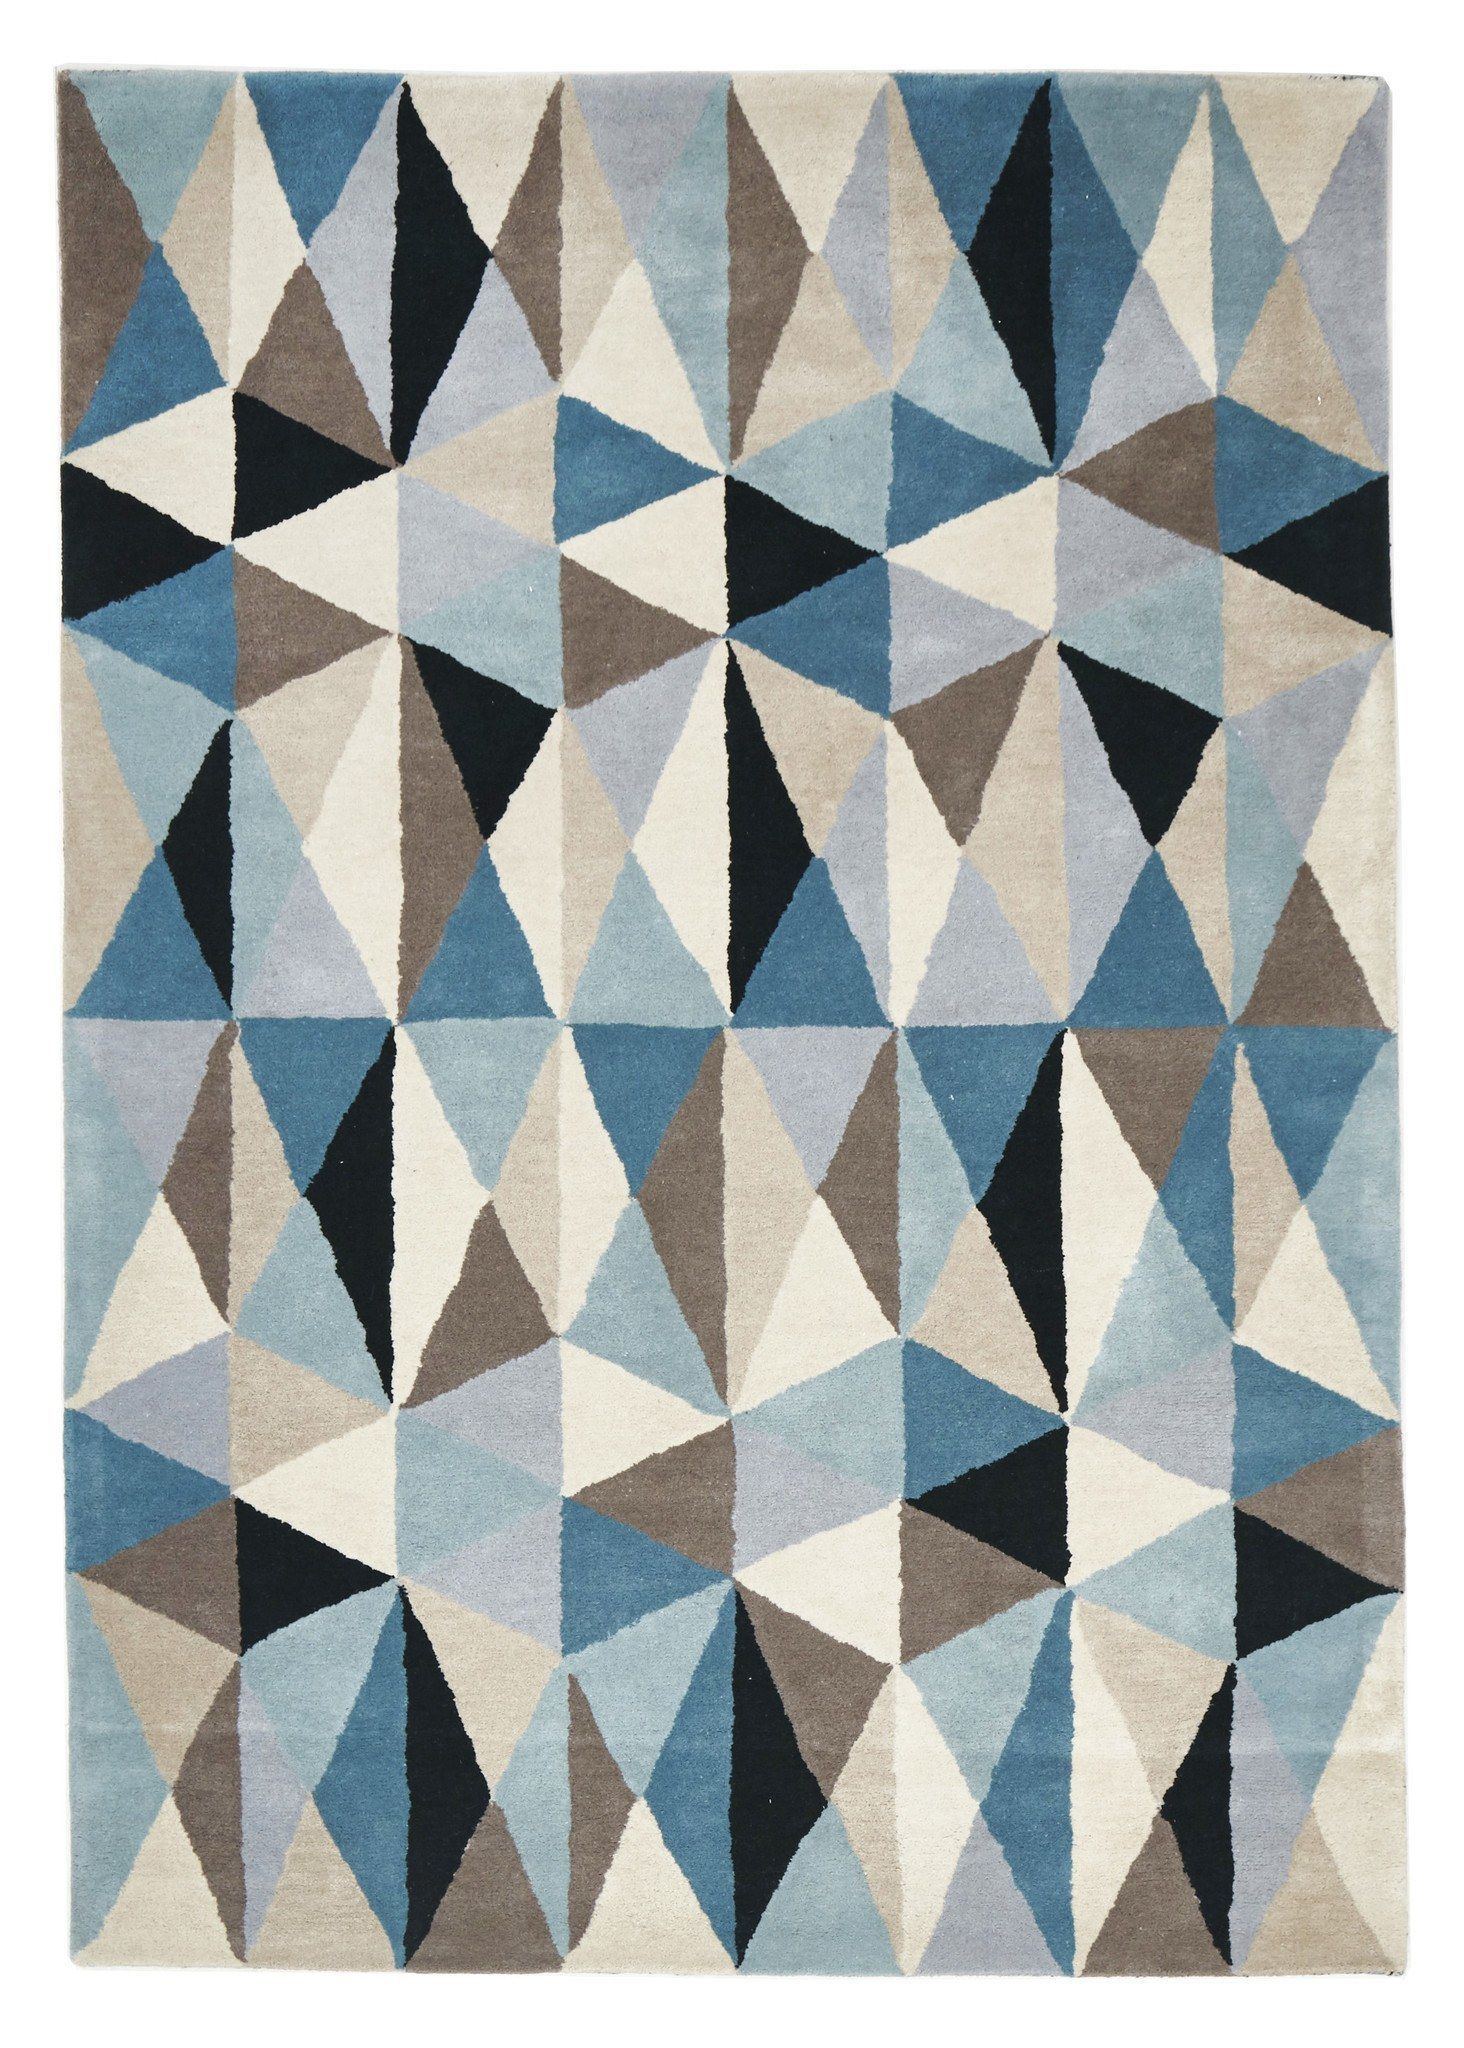 Adding interest, color and texture with modern rugs